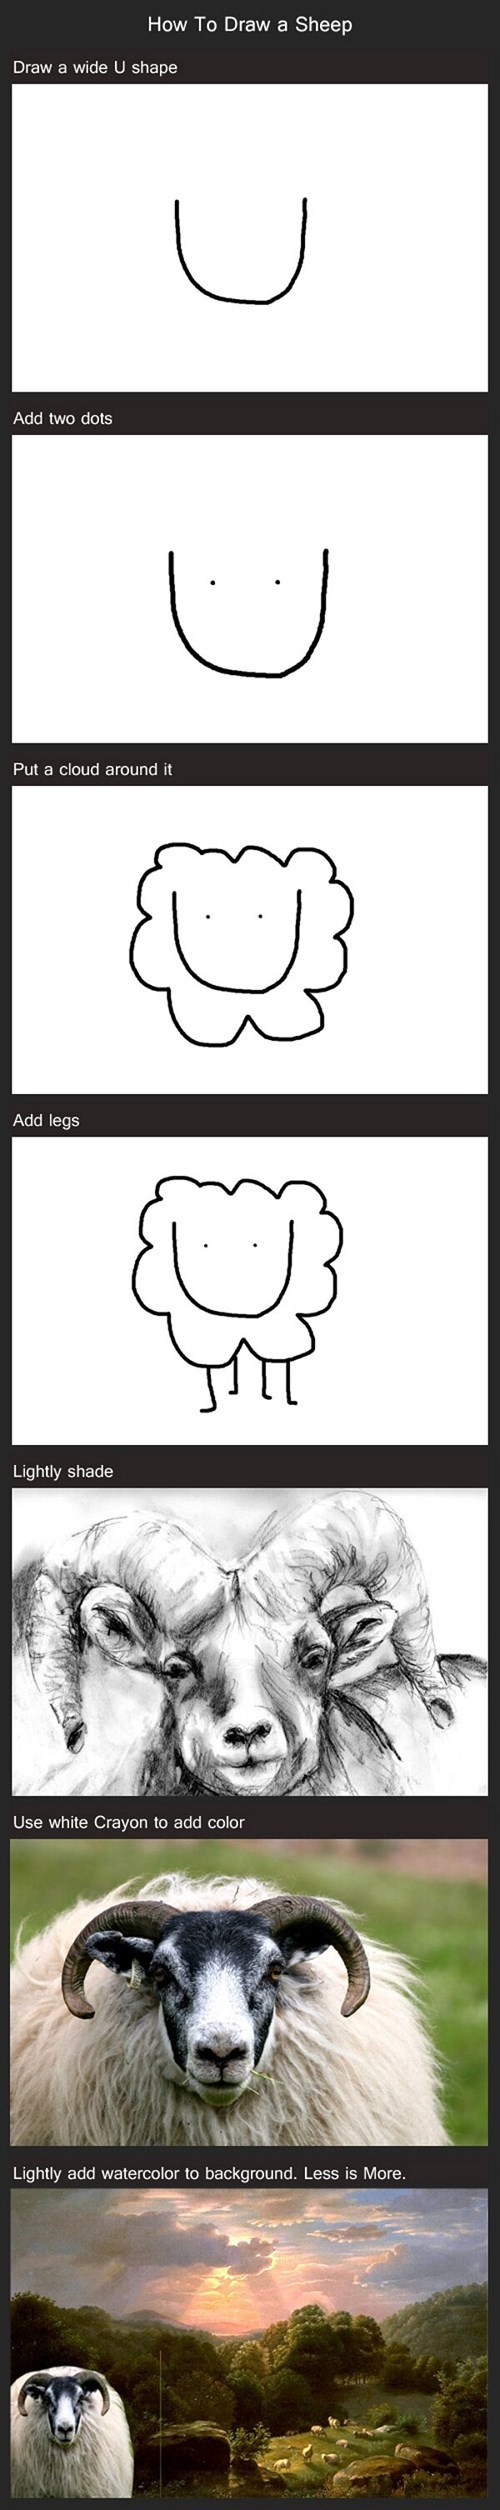 drawing,How To,sheep